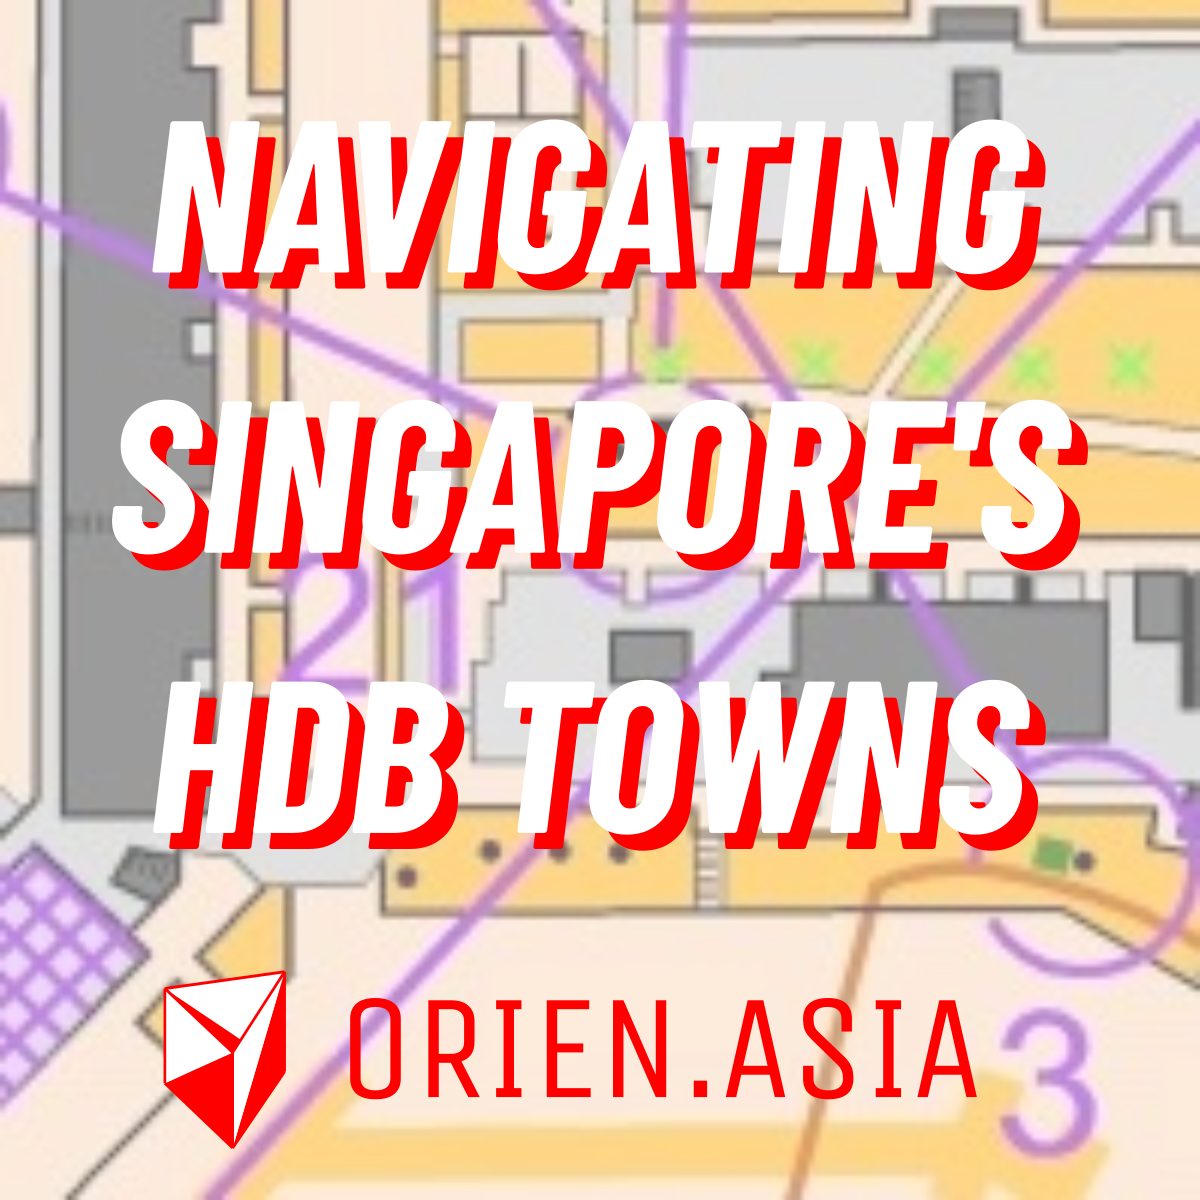 Navigating Singapore's HDB towns with orienteering